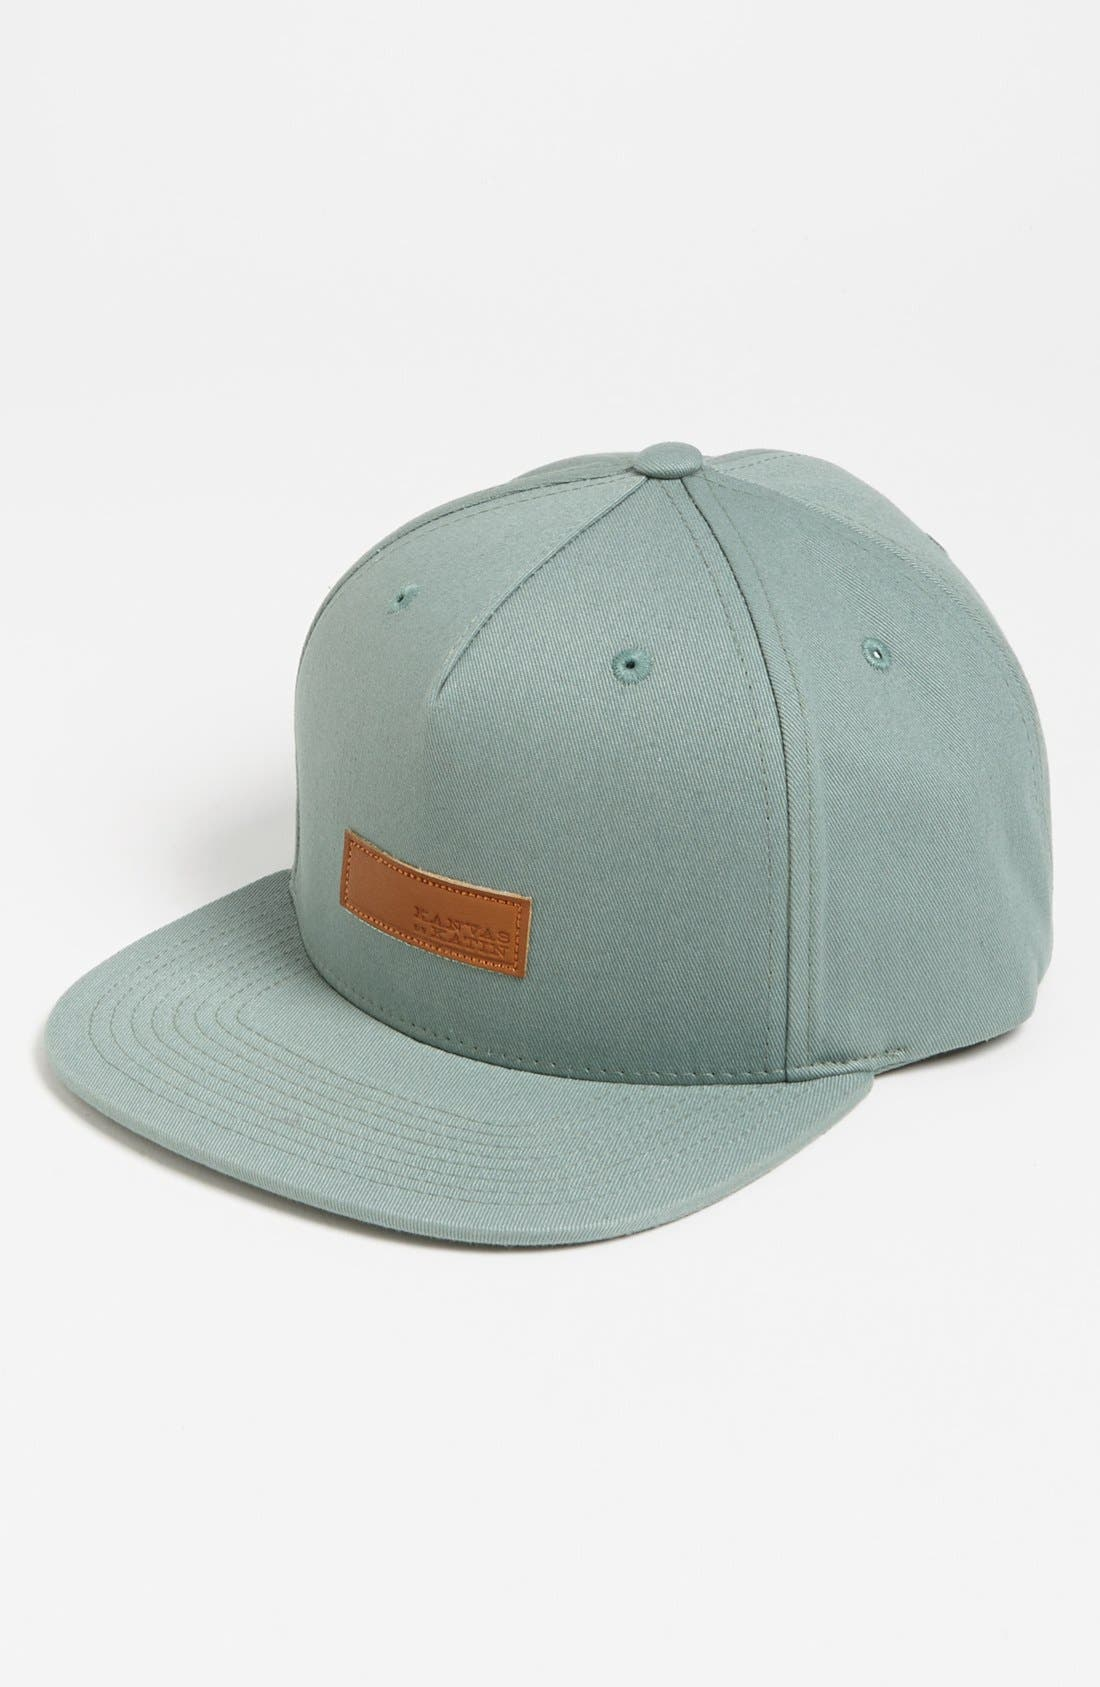 Alternate Image 1 Selected - Katin 'Watson' Baseball Cap